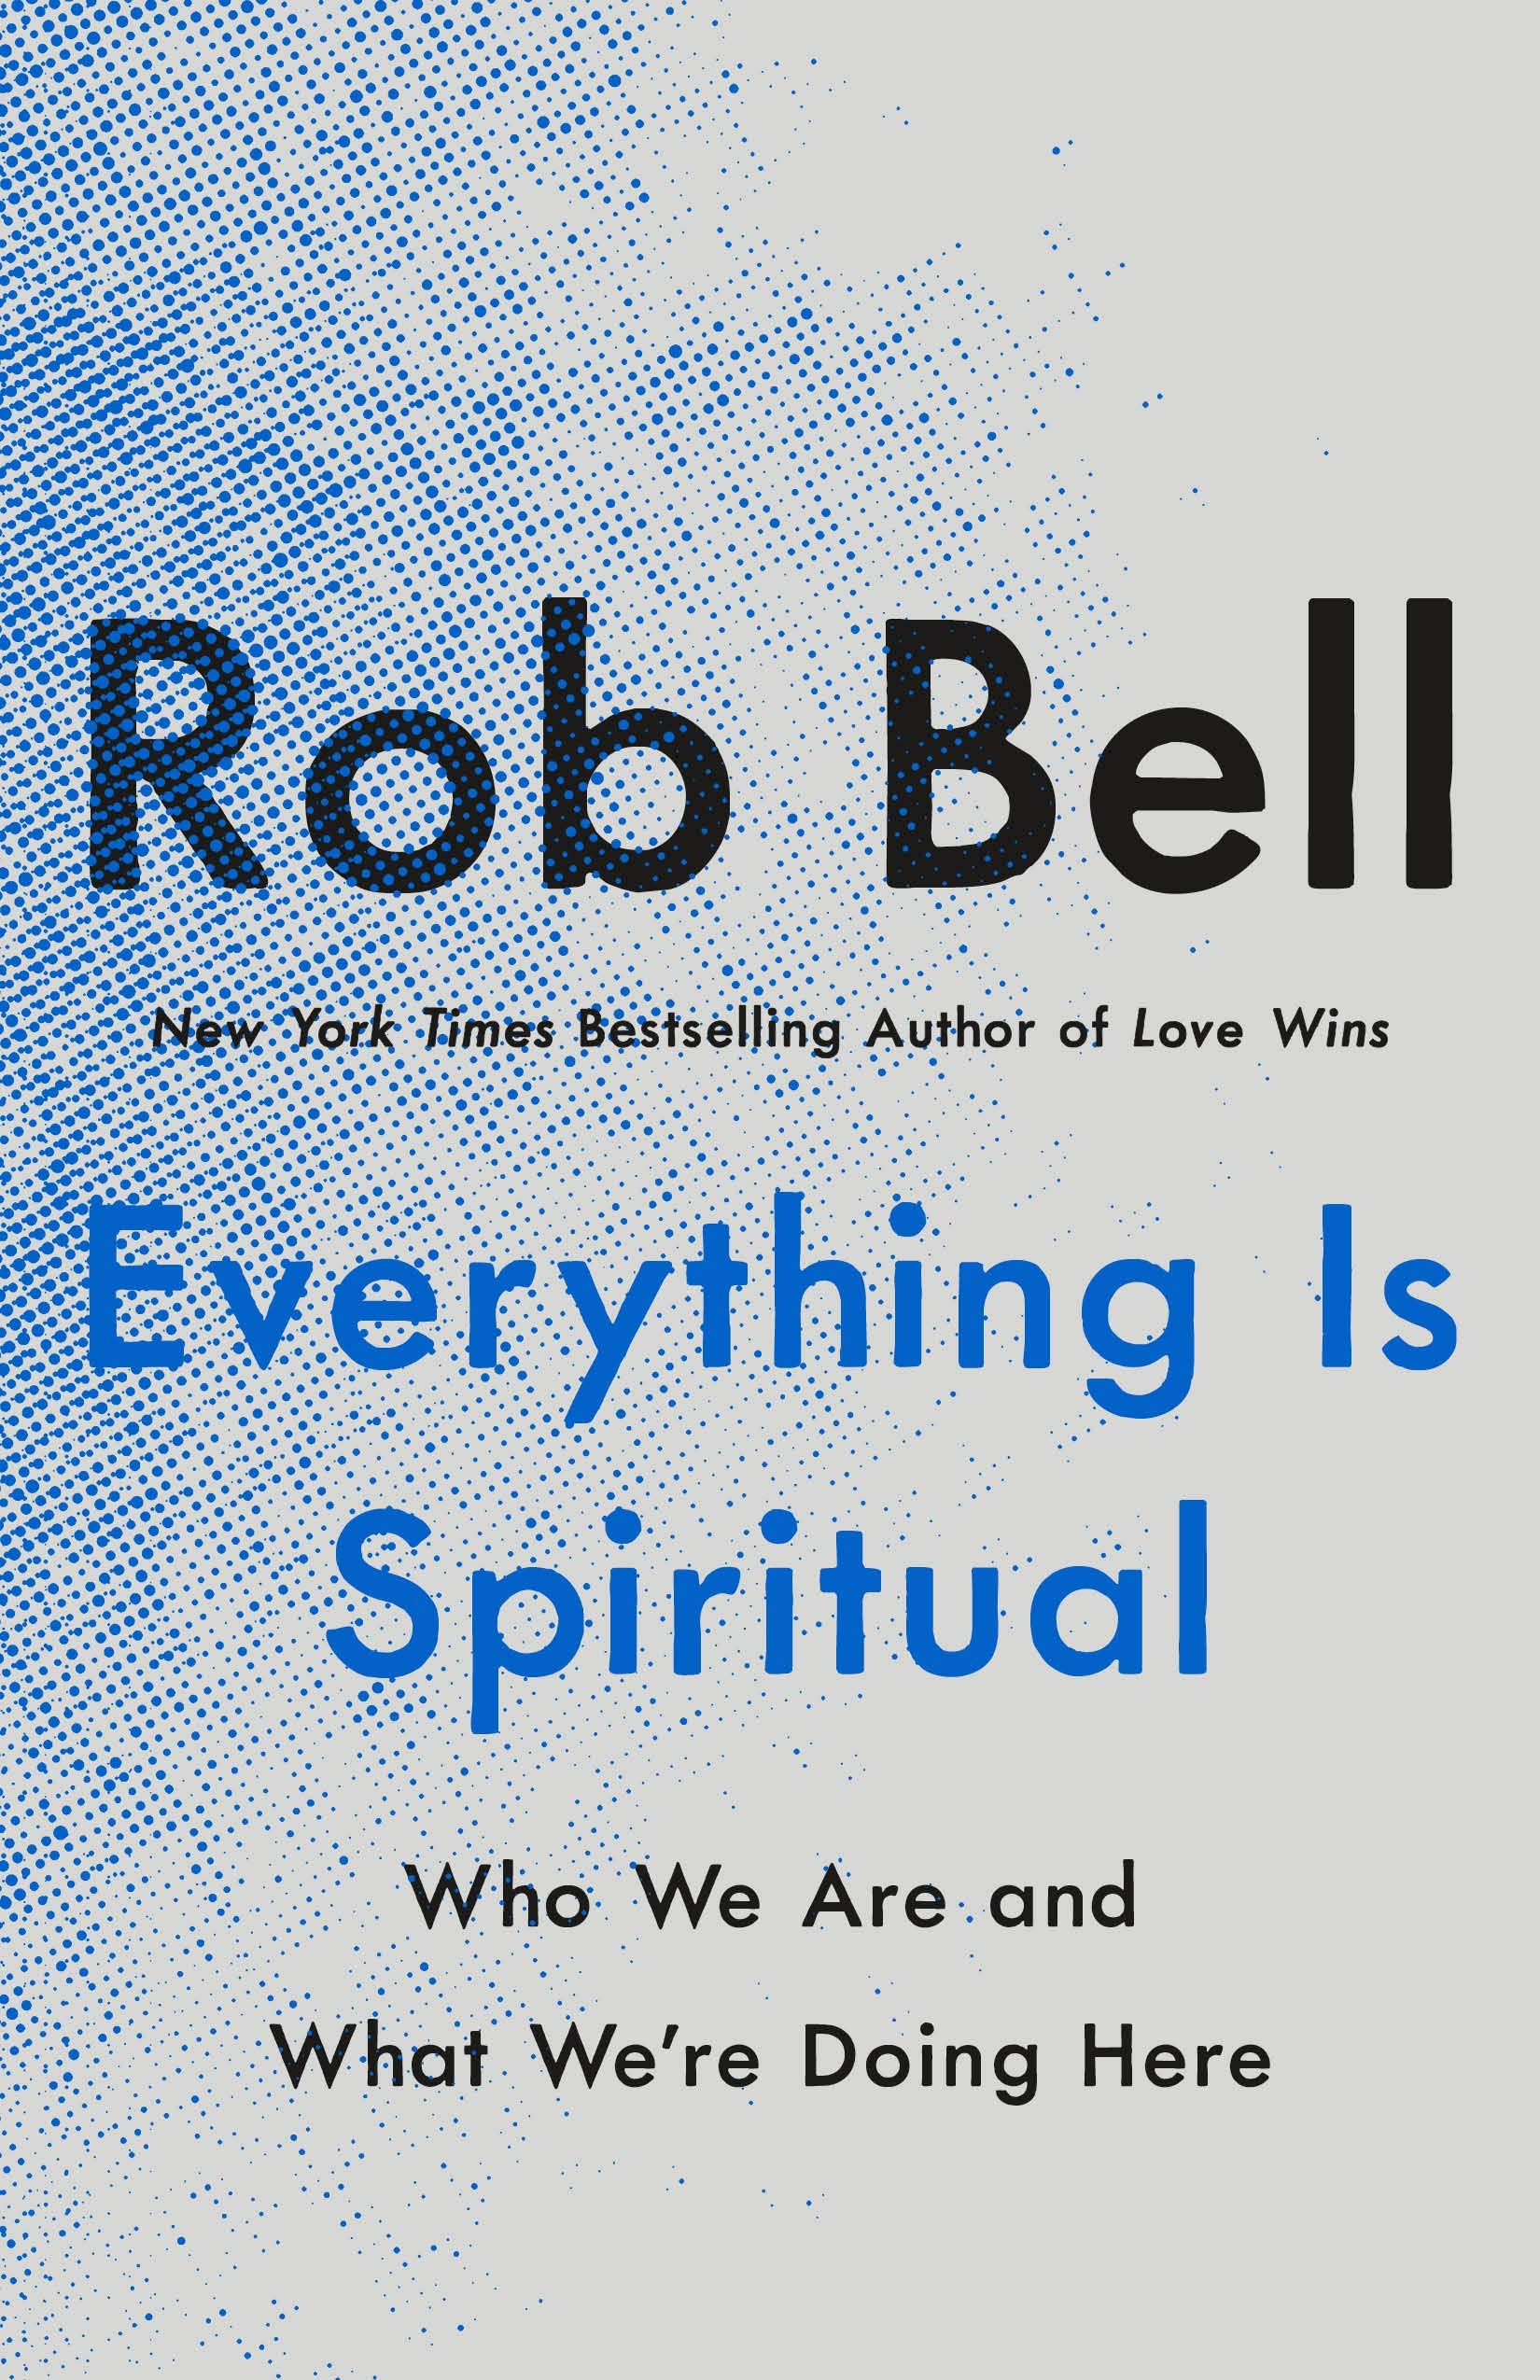 Everything Is Spiritual: Who We Are and What We're Doing Here:  Amazon.co.uk: 9781250620569: Books